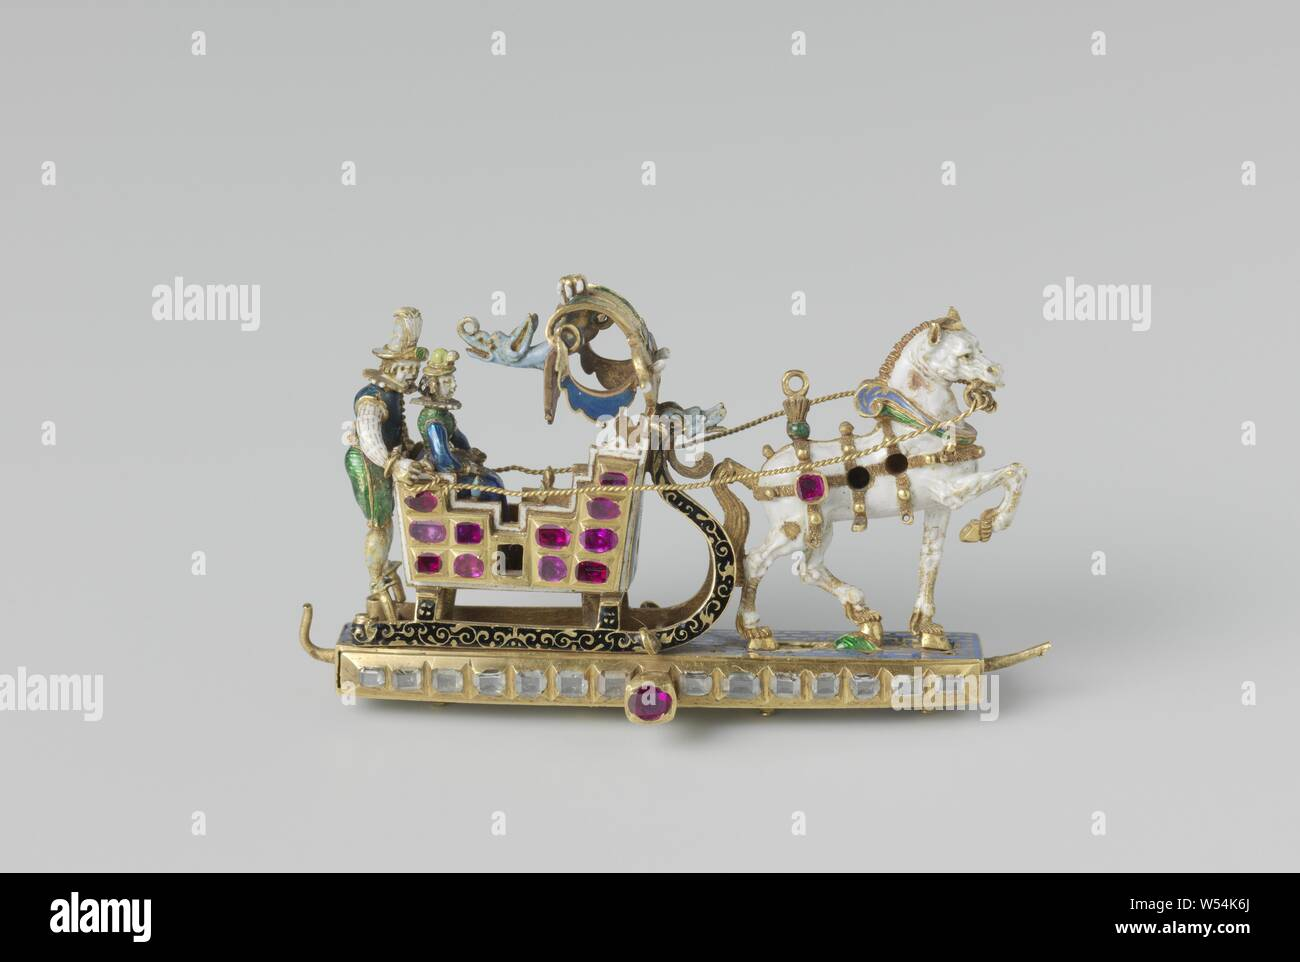 Pendant with man and woman in a horse-drawn sleigh, Pendant of gold. Representing a horse-drawn sleigh pulled by a horse. There is a woman in the sleigh and behind her is the driver, horse-sleigh, anonymous, Zuid-Duitsland, c. 1600, gold (metal), diamond (mineral), h 3.8 cm × w 6.4 cm Stock Photo